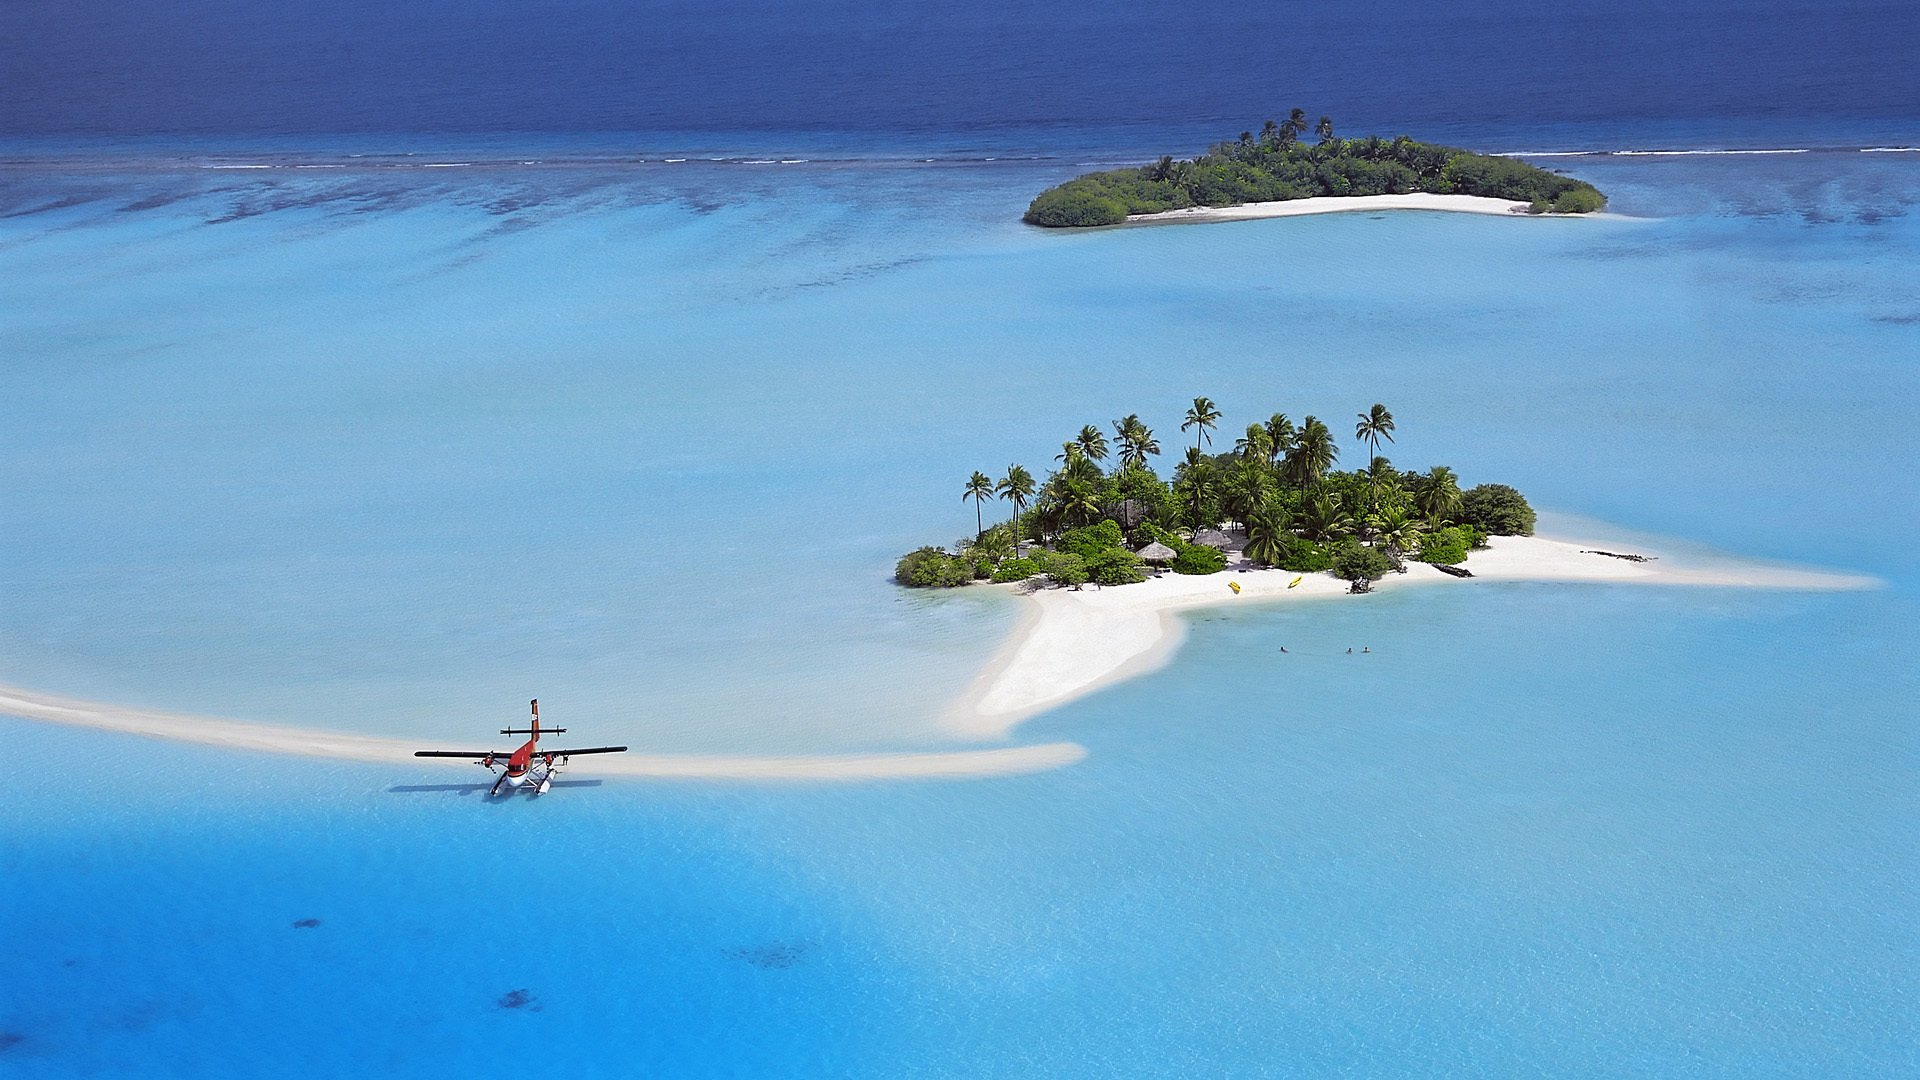 Earth - Island  Maldives Ocean Water Aircraft Airplane Wallpaper